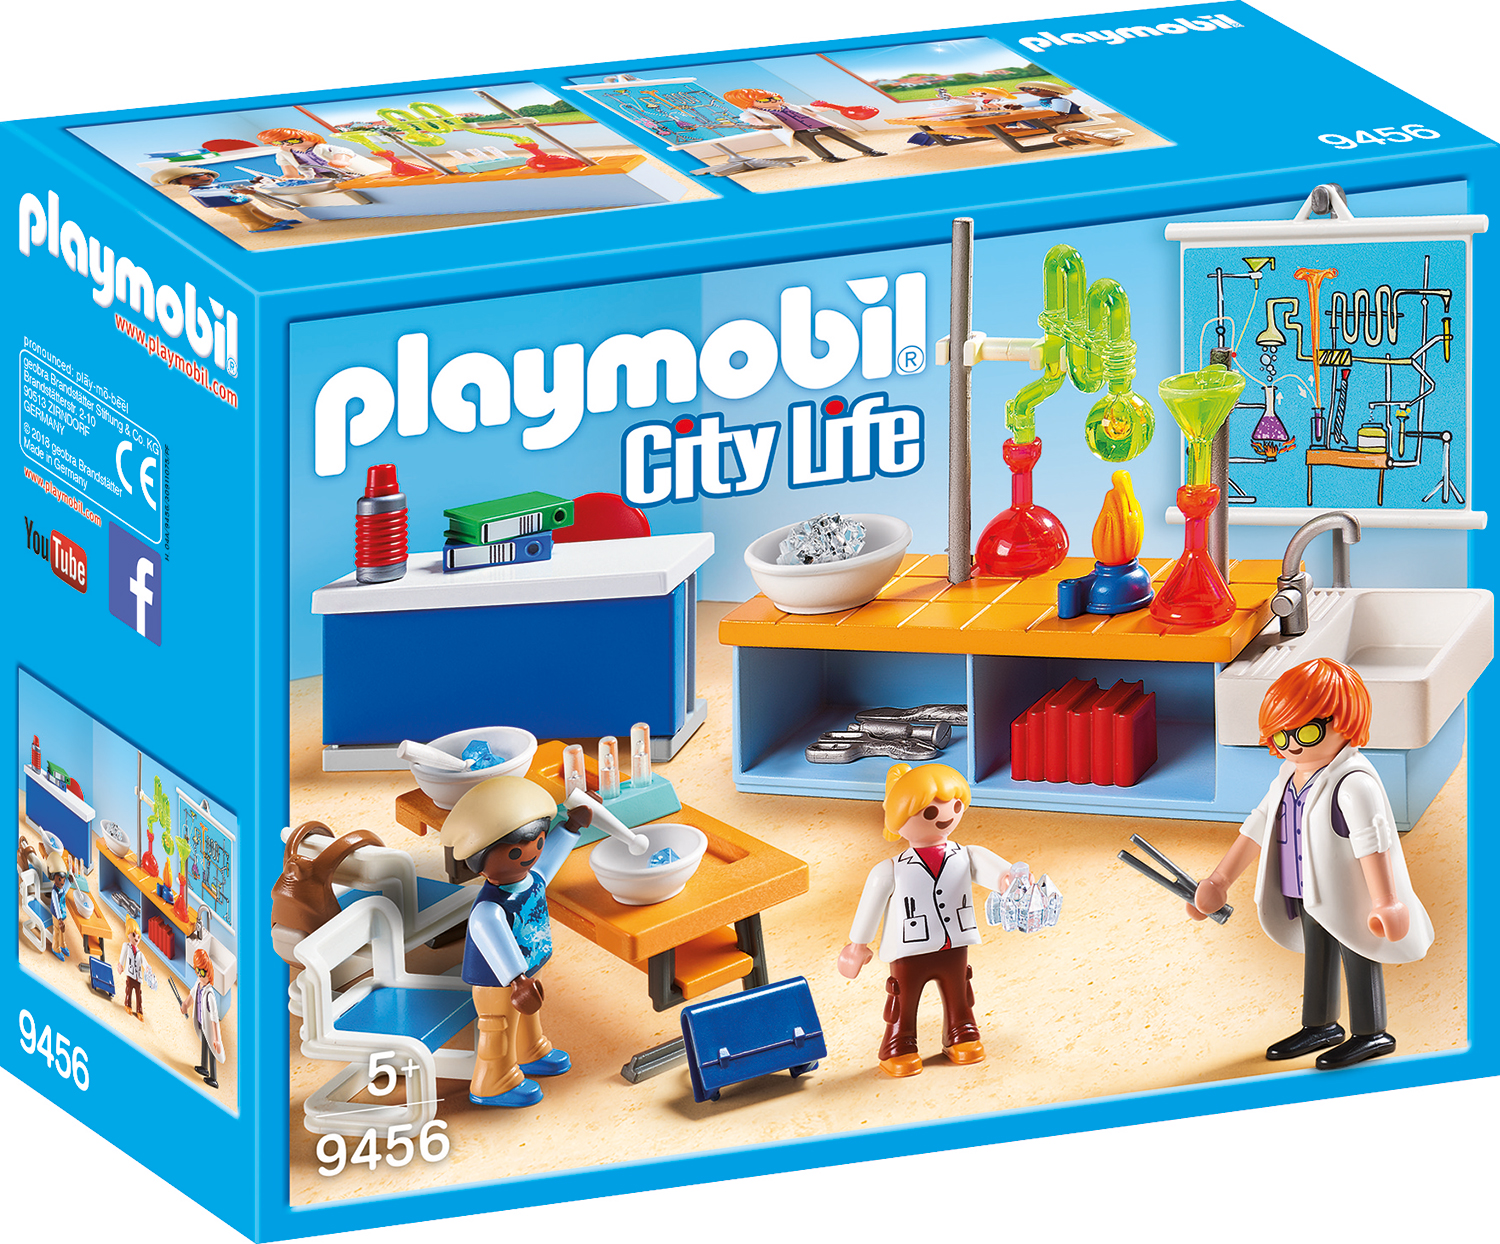 Sala de chimie playmobil city life